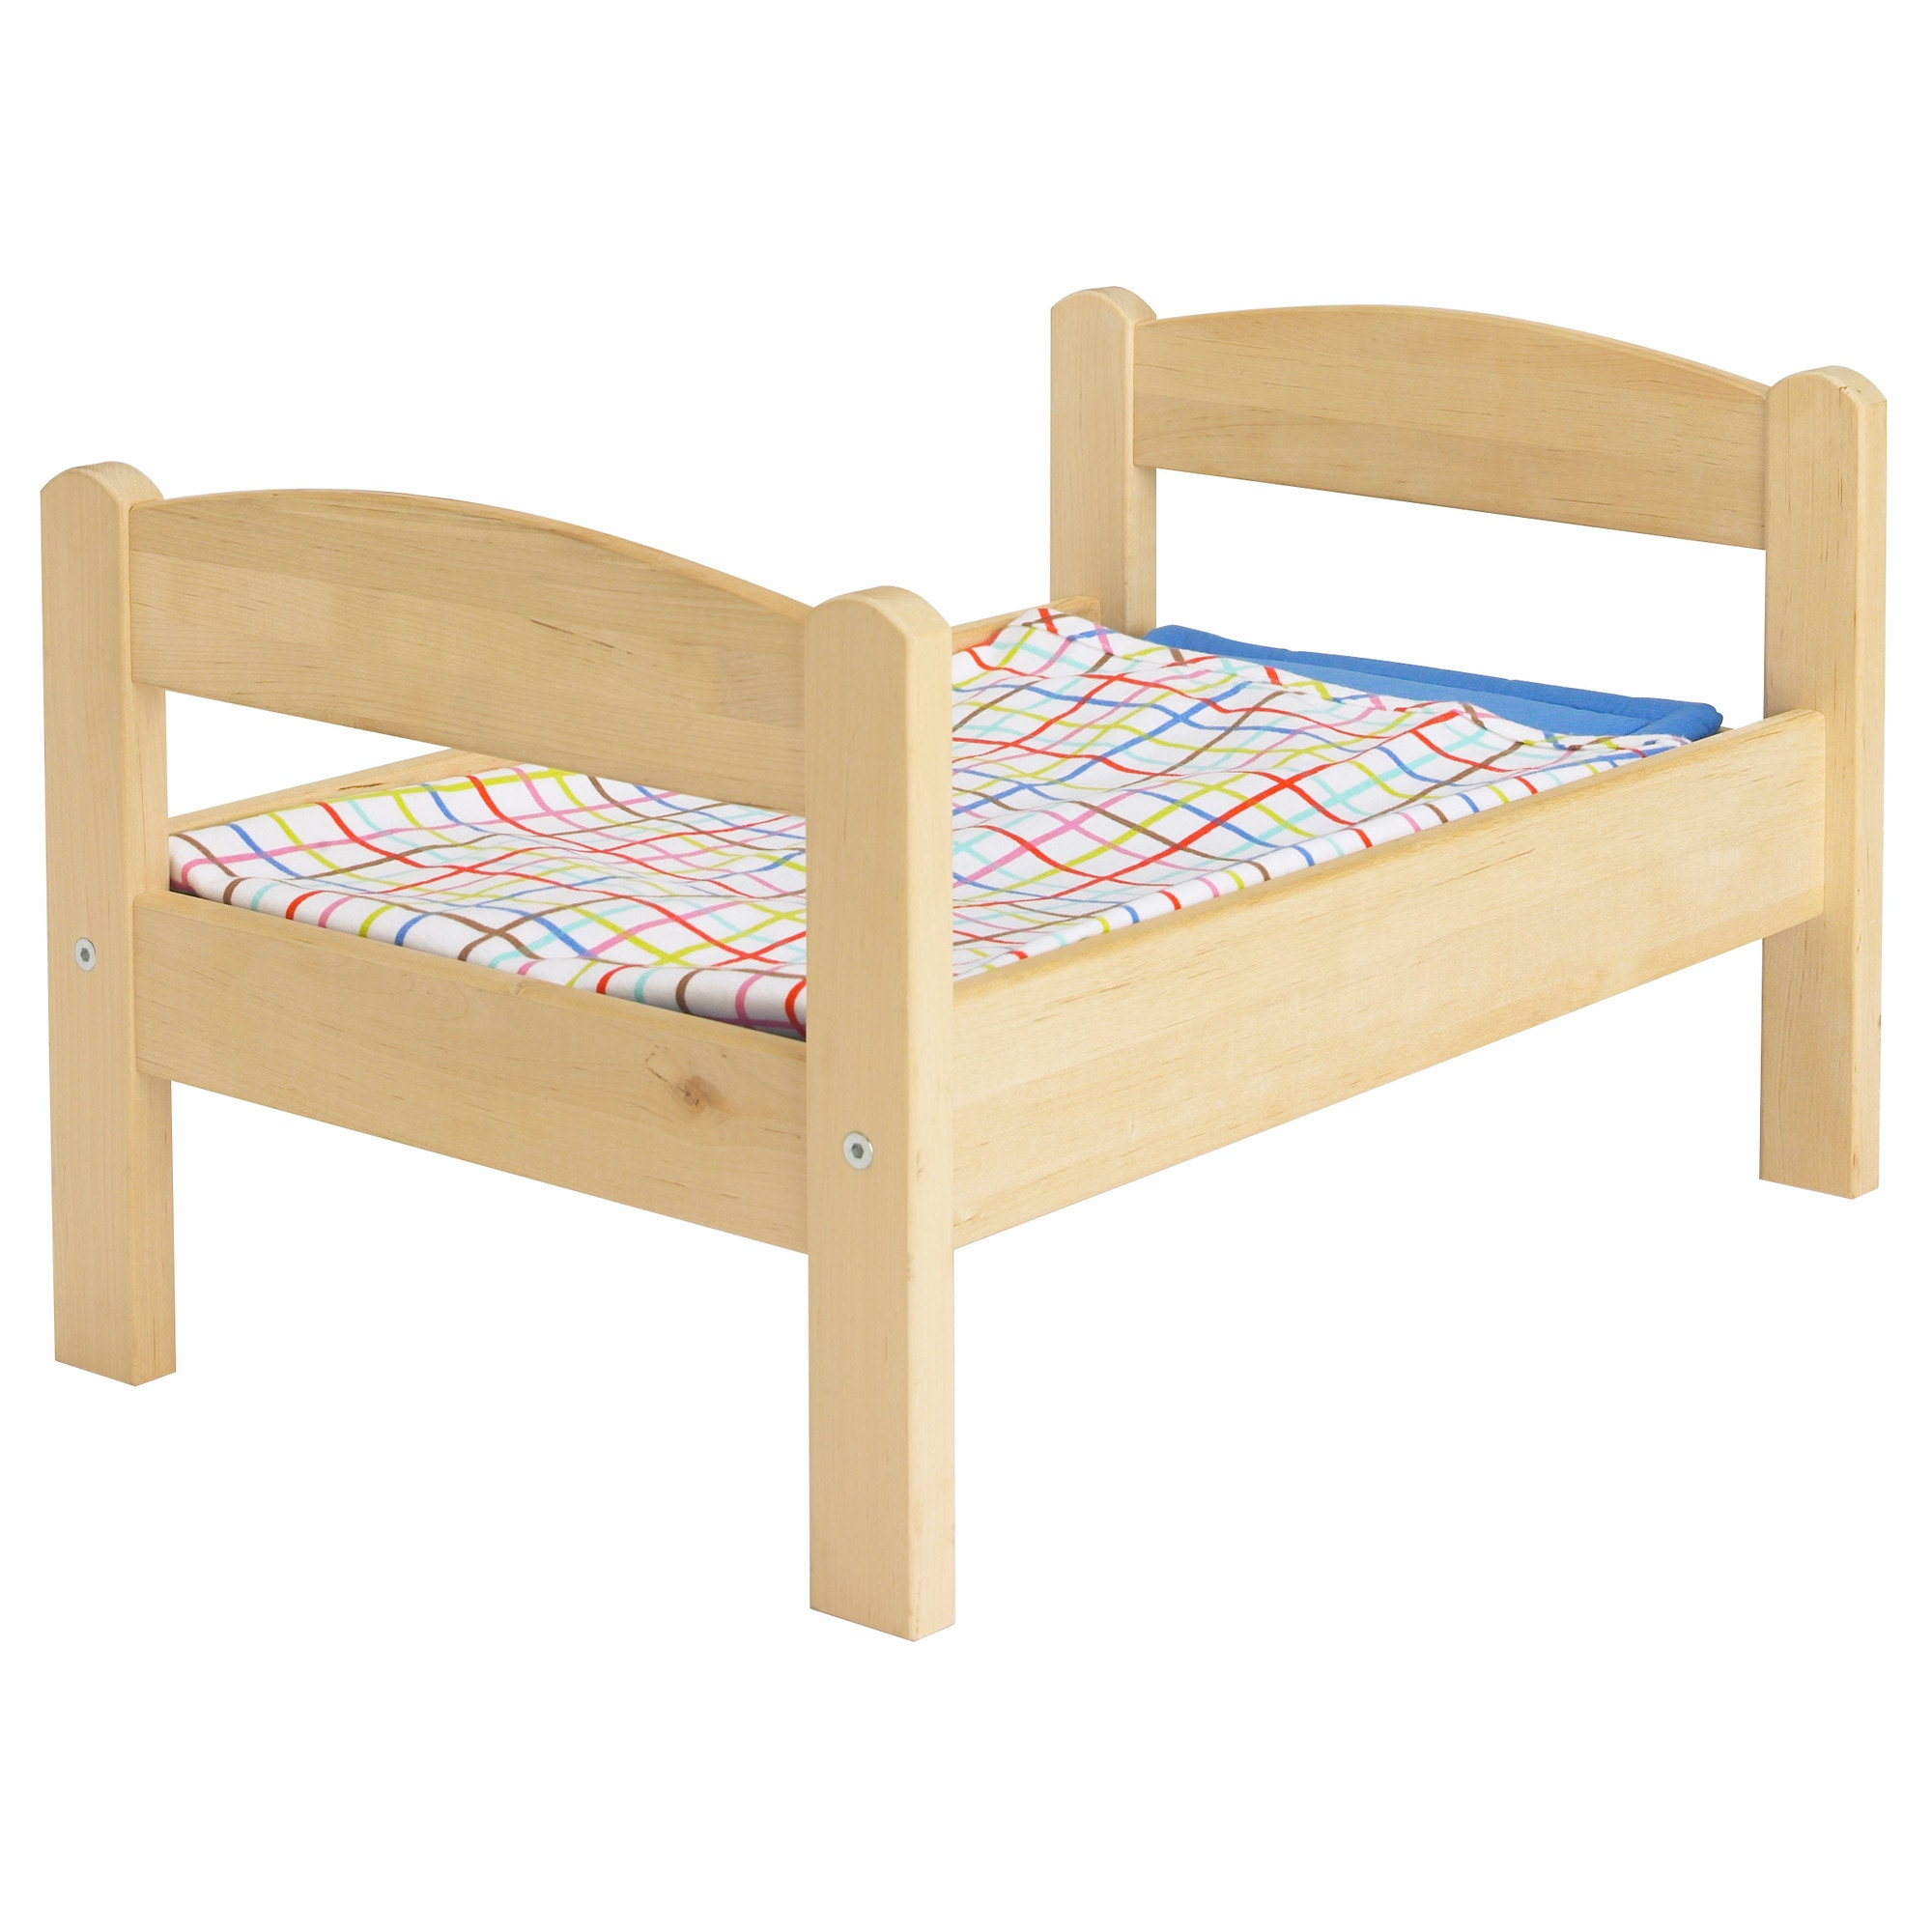 il listing criib doll crib au fullxfull beds zoom wood bed